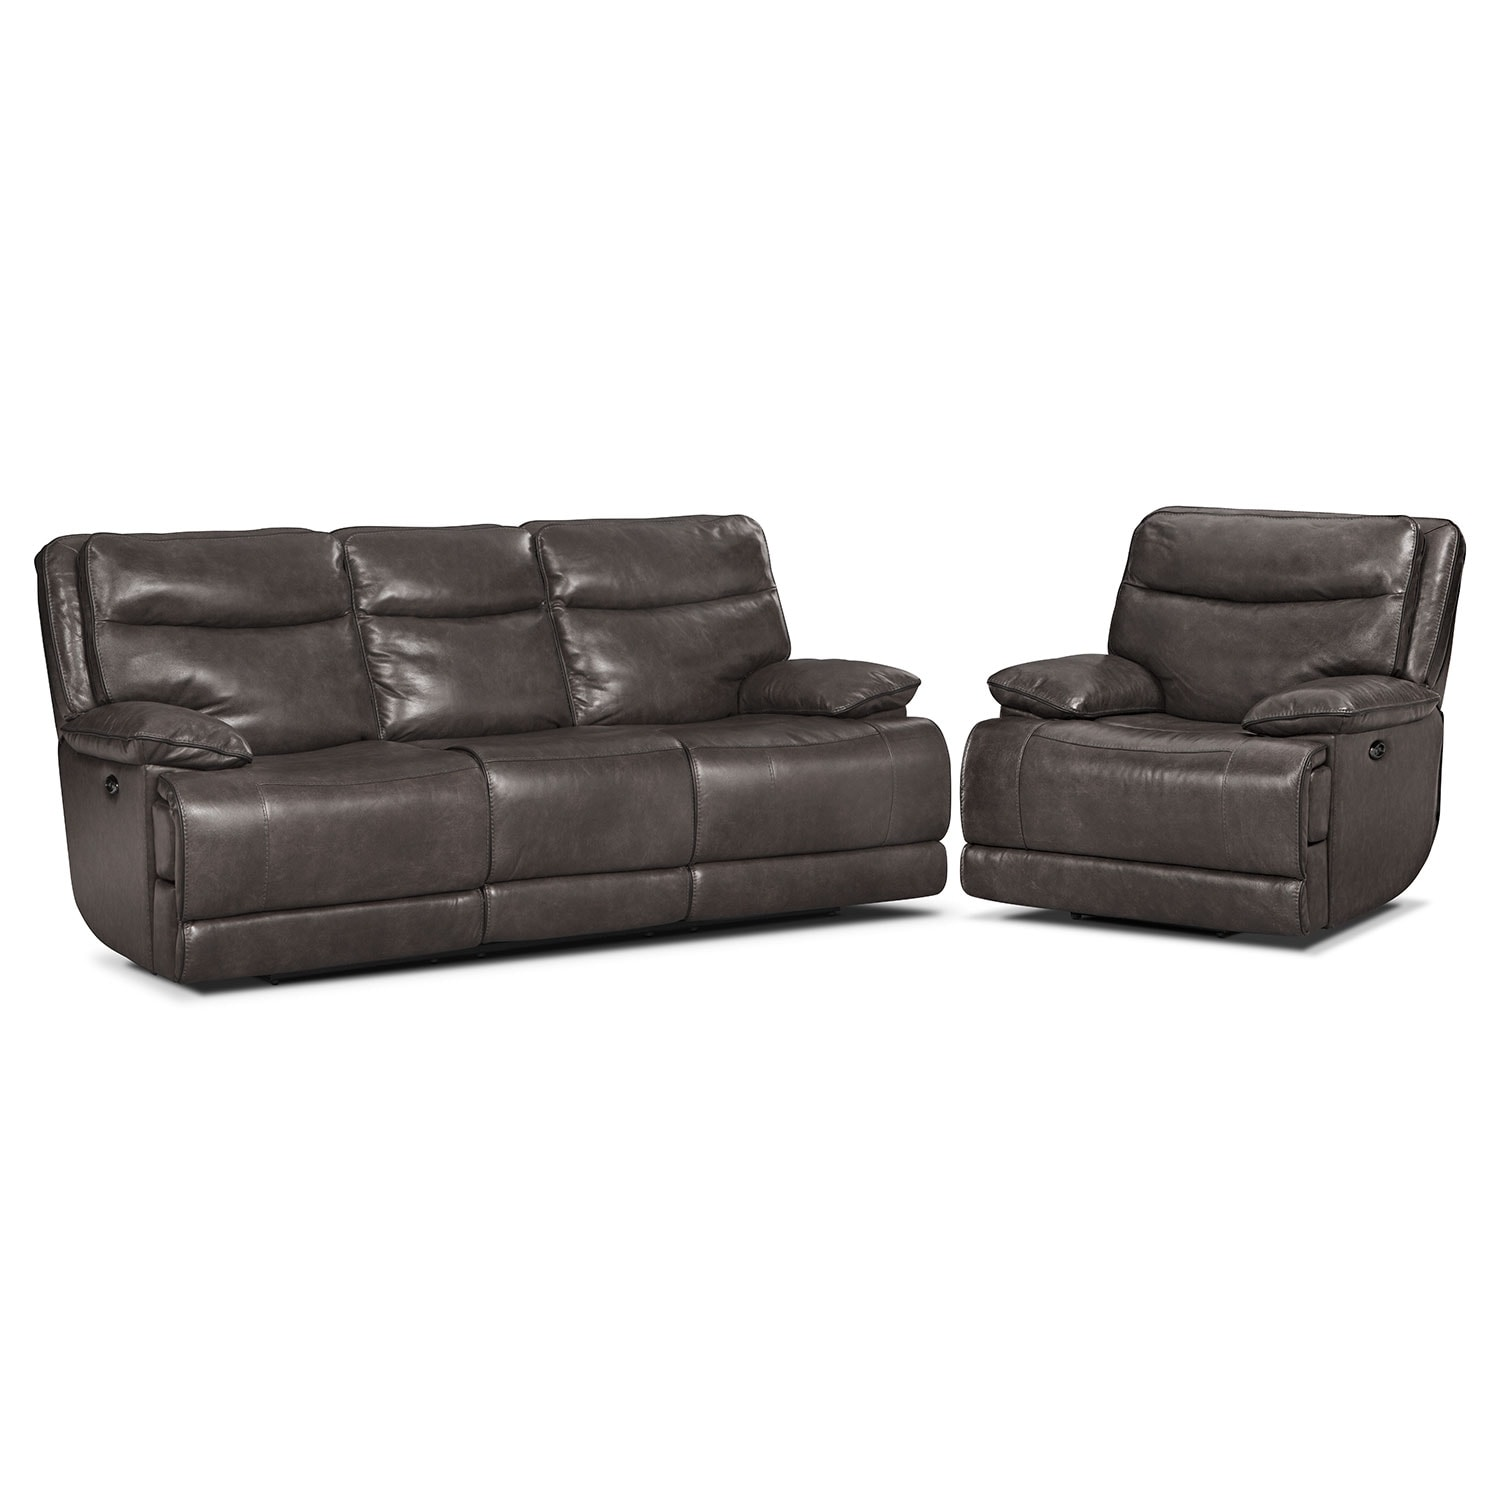 Living Room Furniture - Monaco Power Reclining Sofa and Recliner Set - Gray